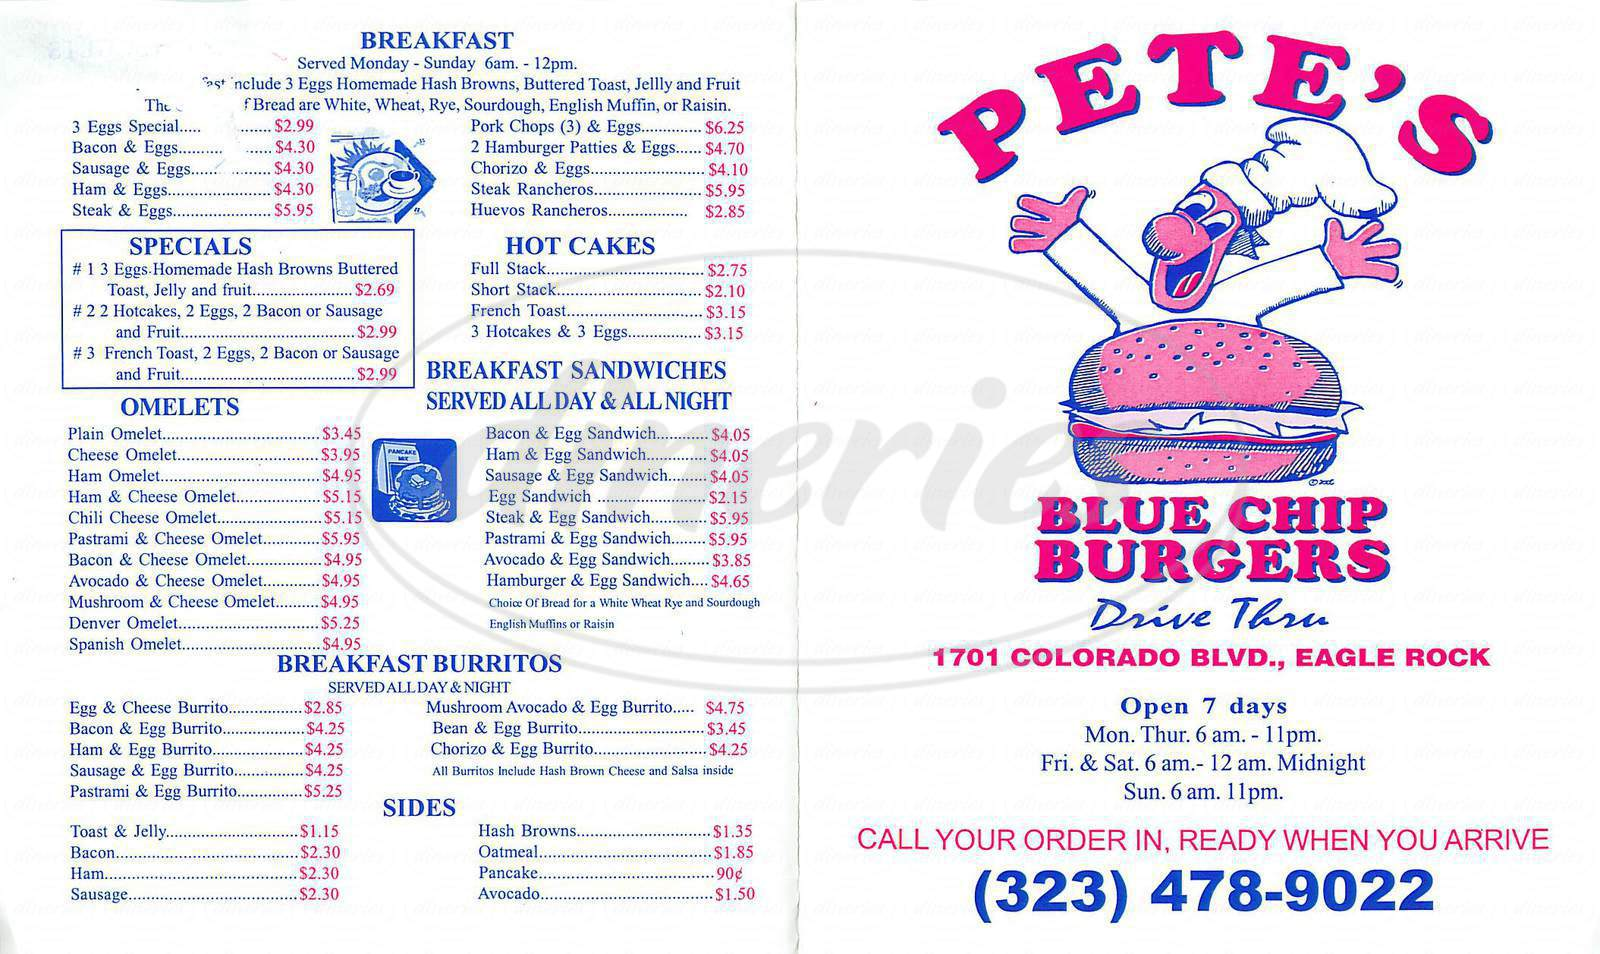 menu for Petes Blue Chip Burgers